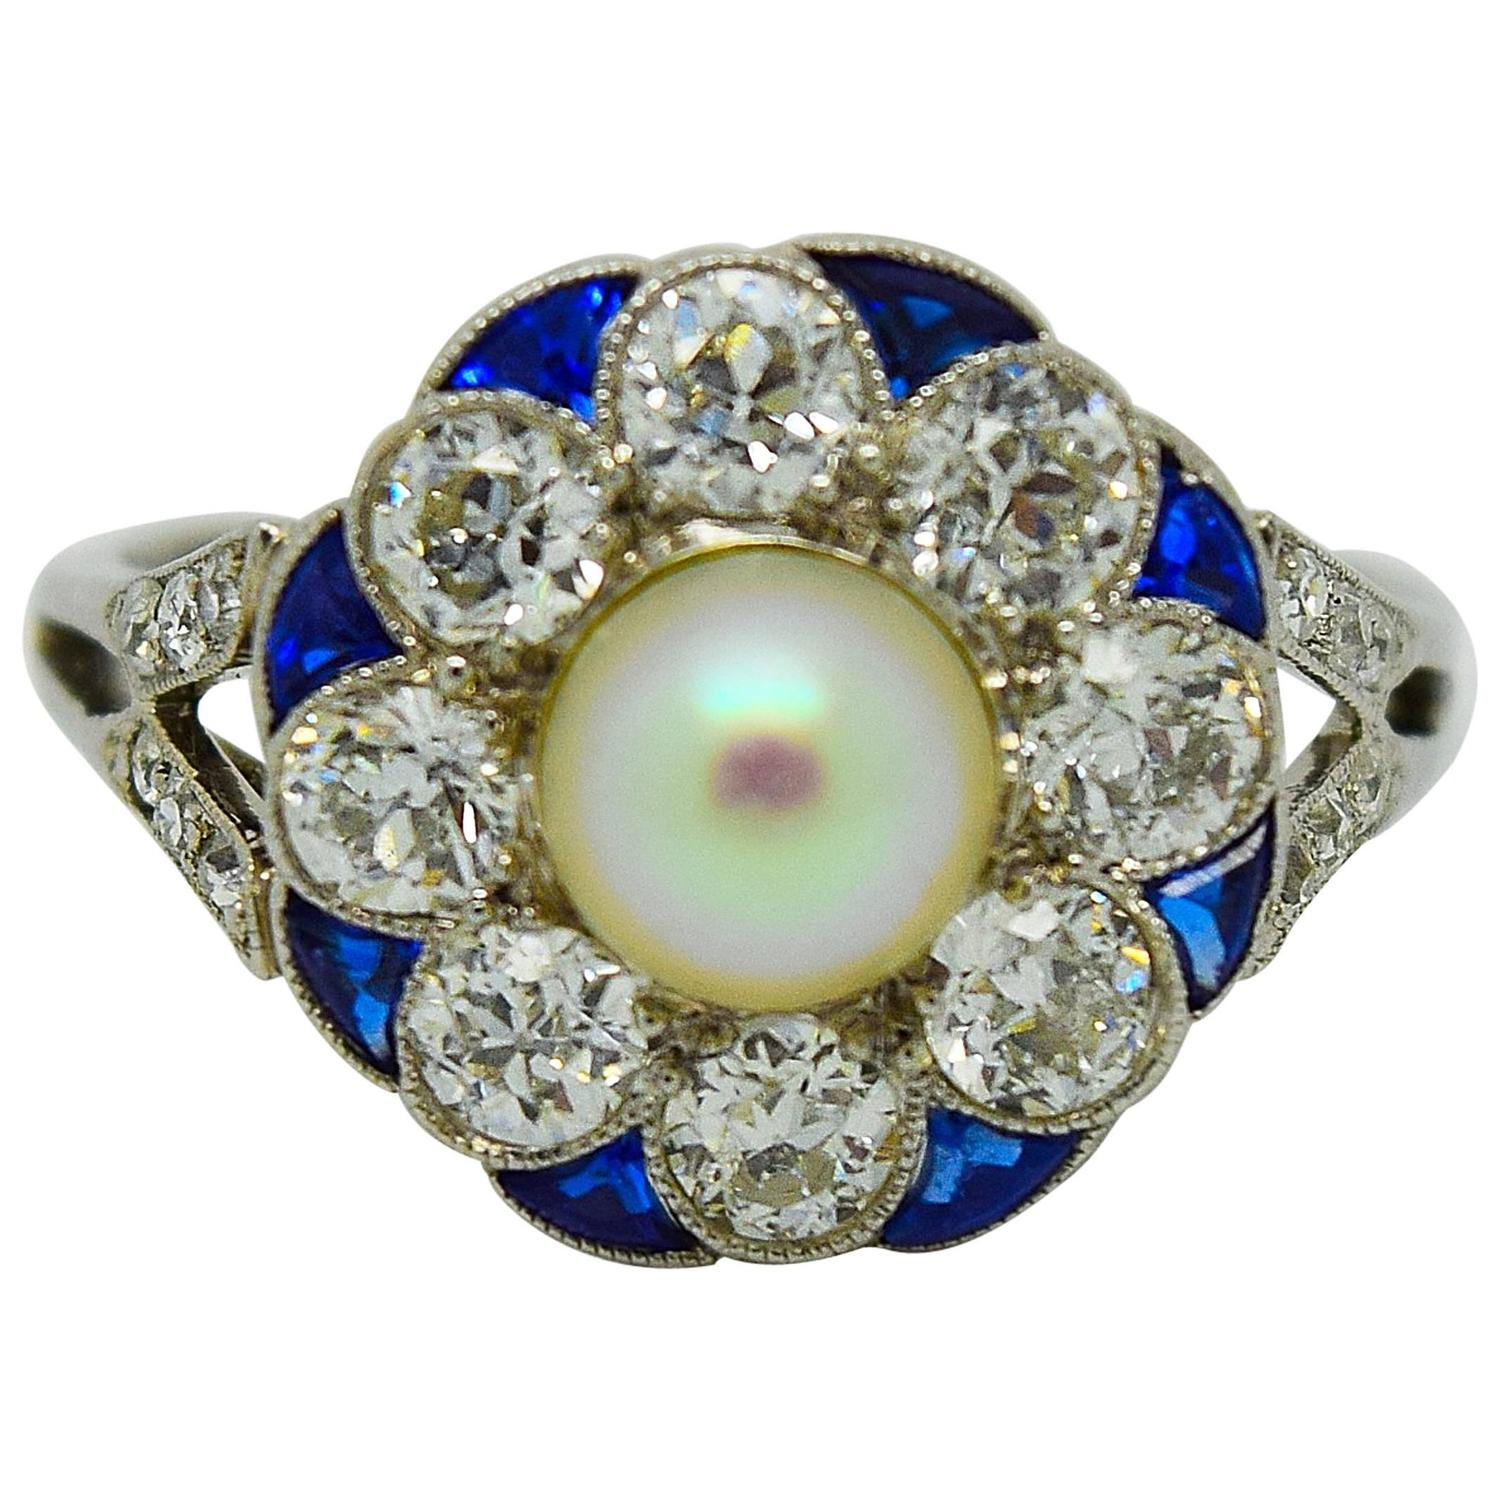 New Exquisite Art Deco Diamond Sapphire Pearl Ring - YO15